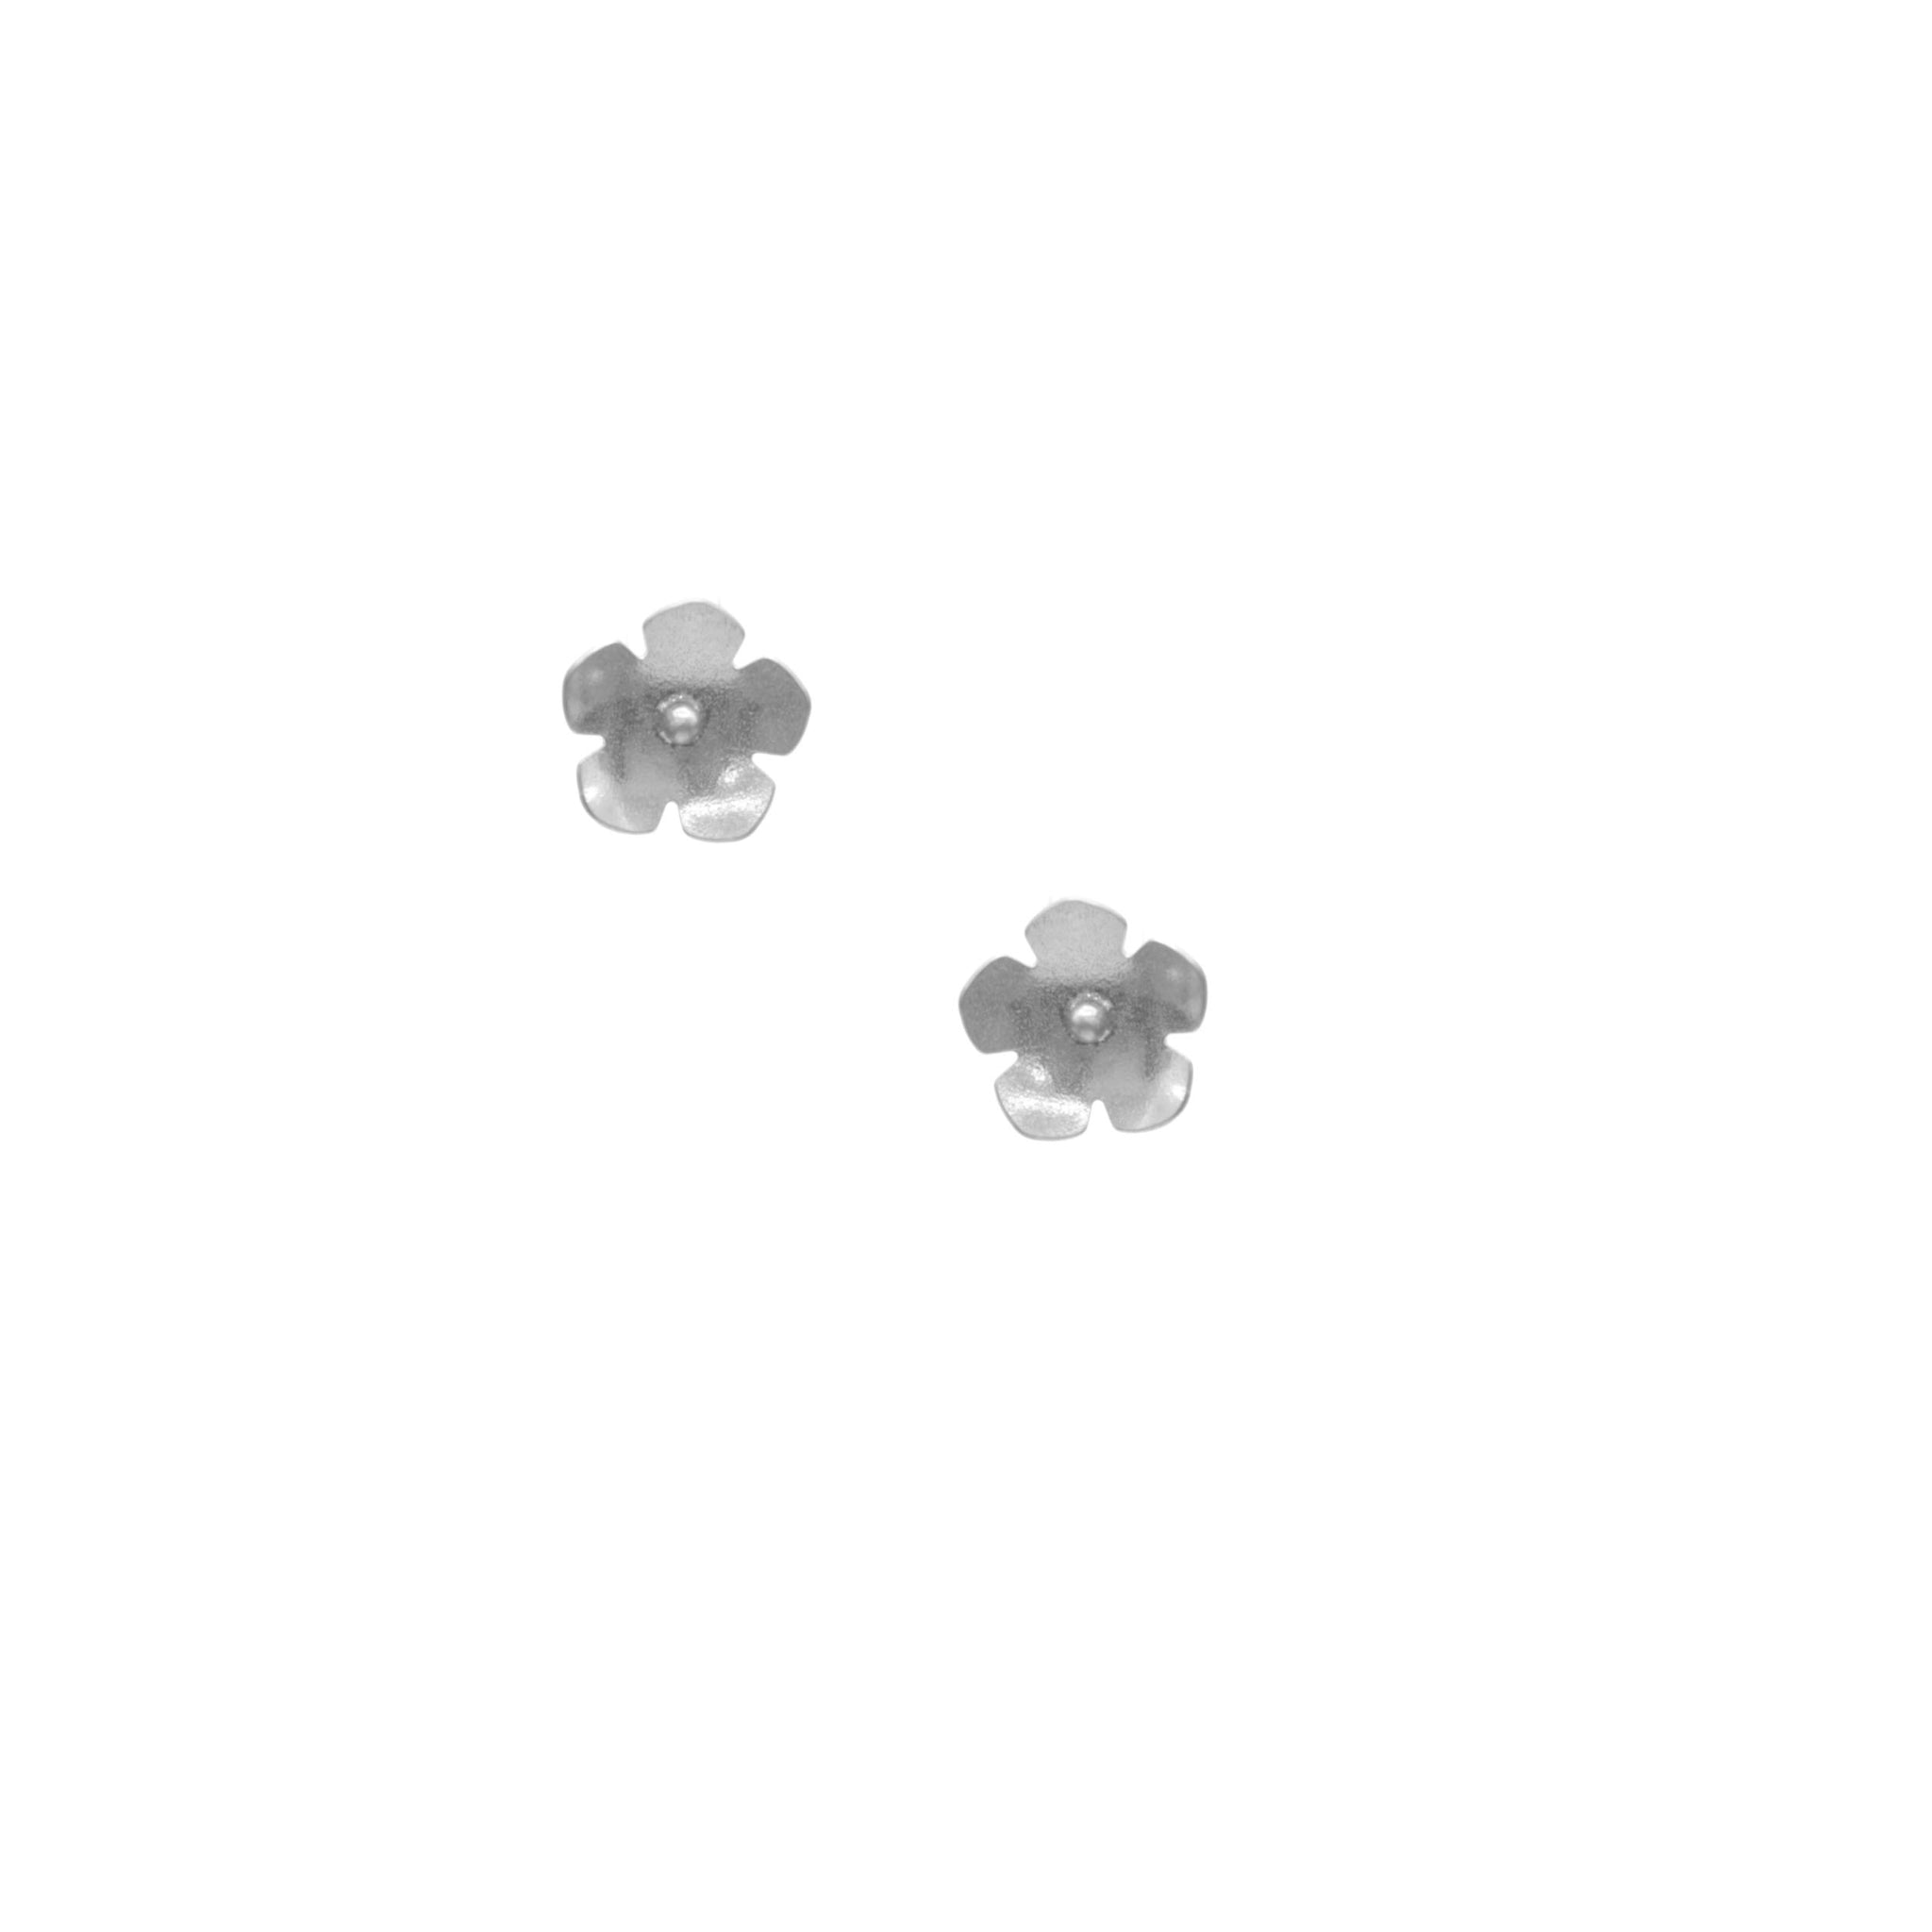 Wild Strawberry Earrings, Petite Single Blossom Stud